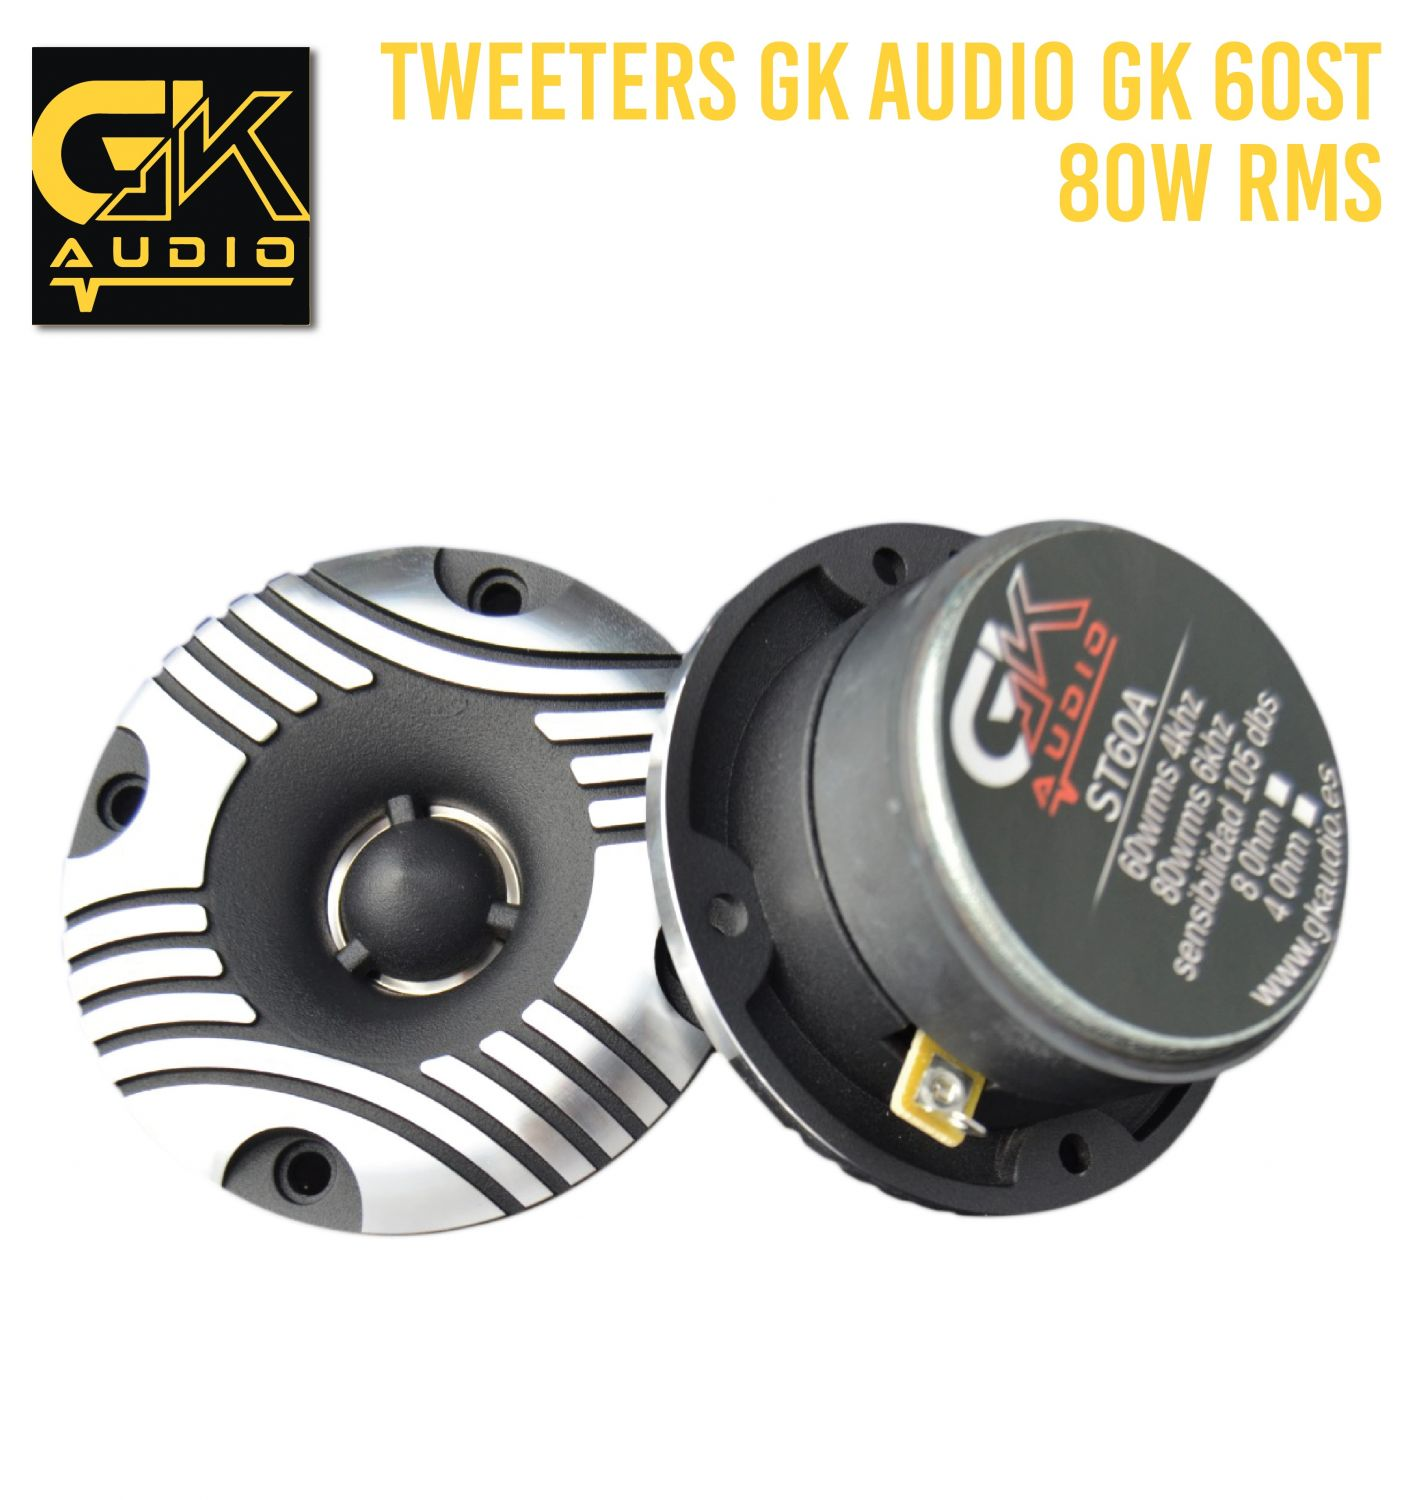 GK Audio 60ST